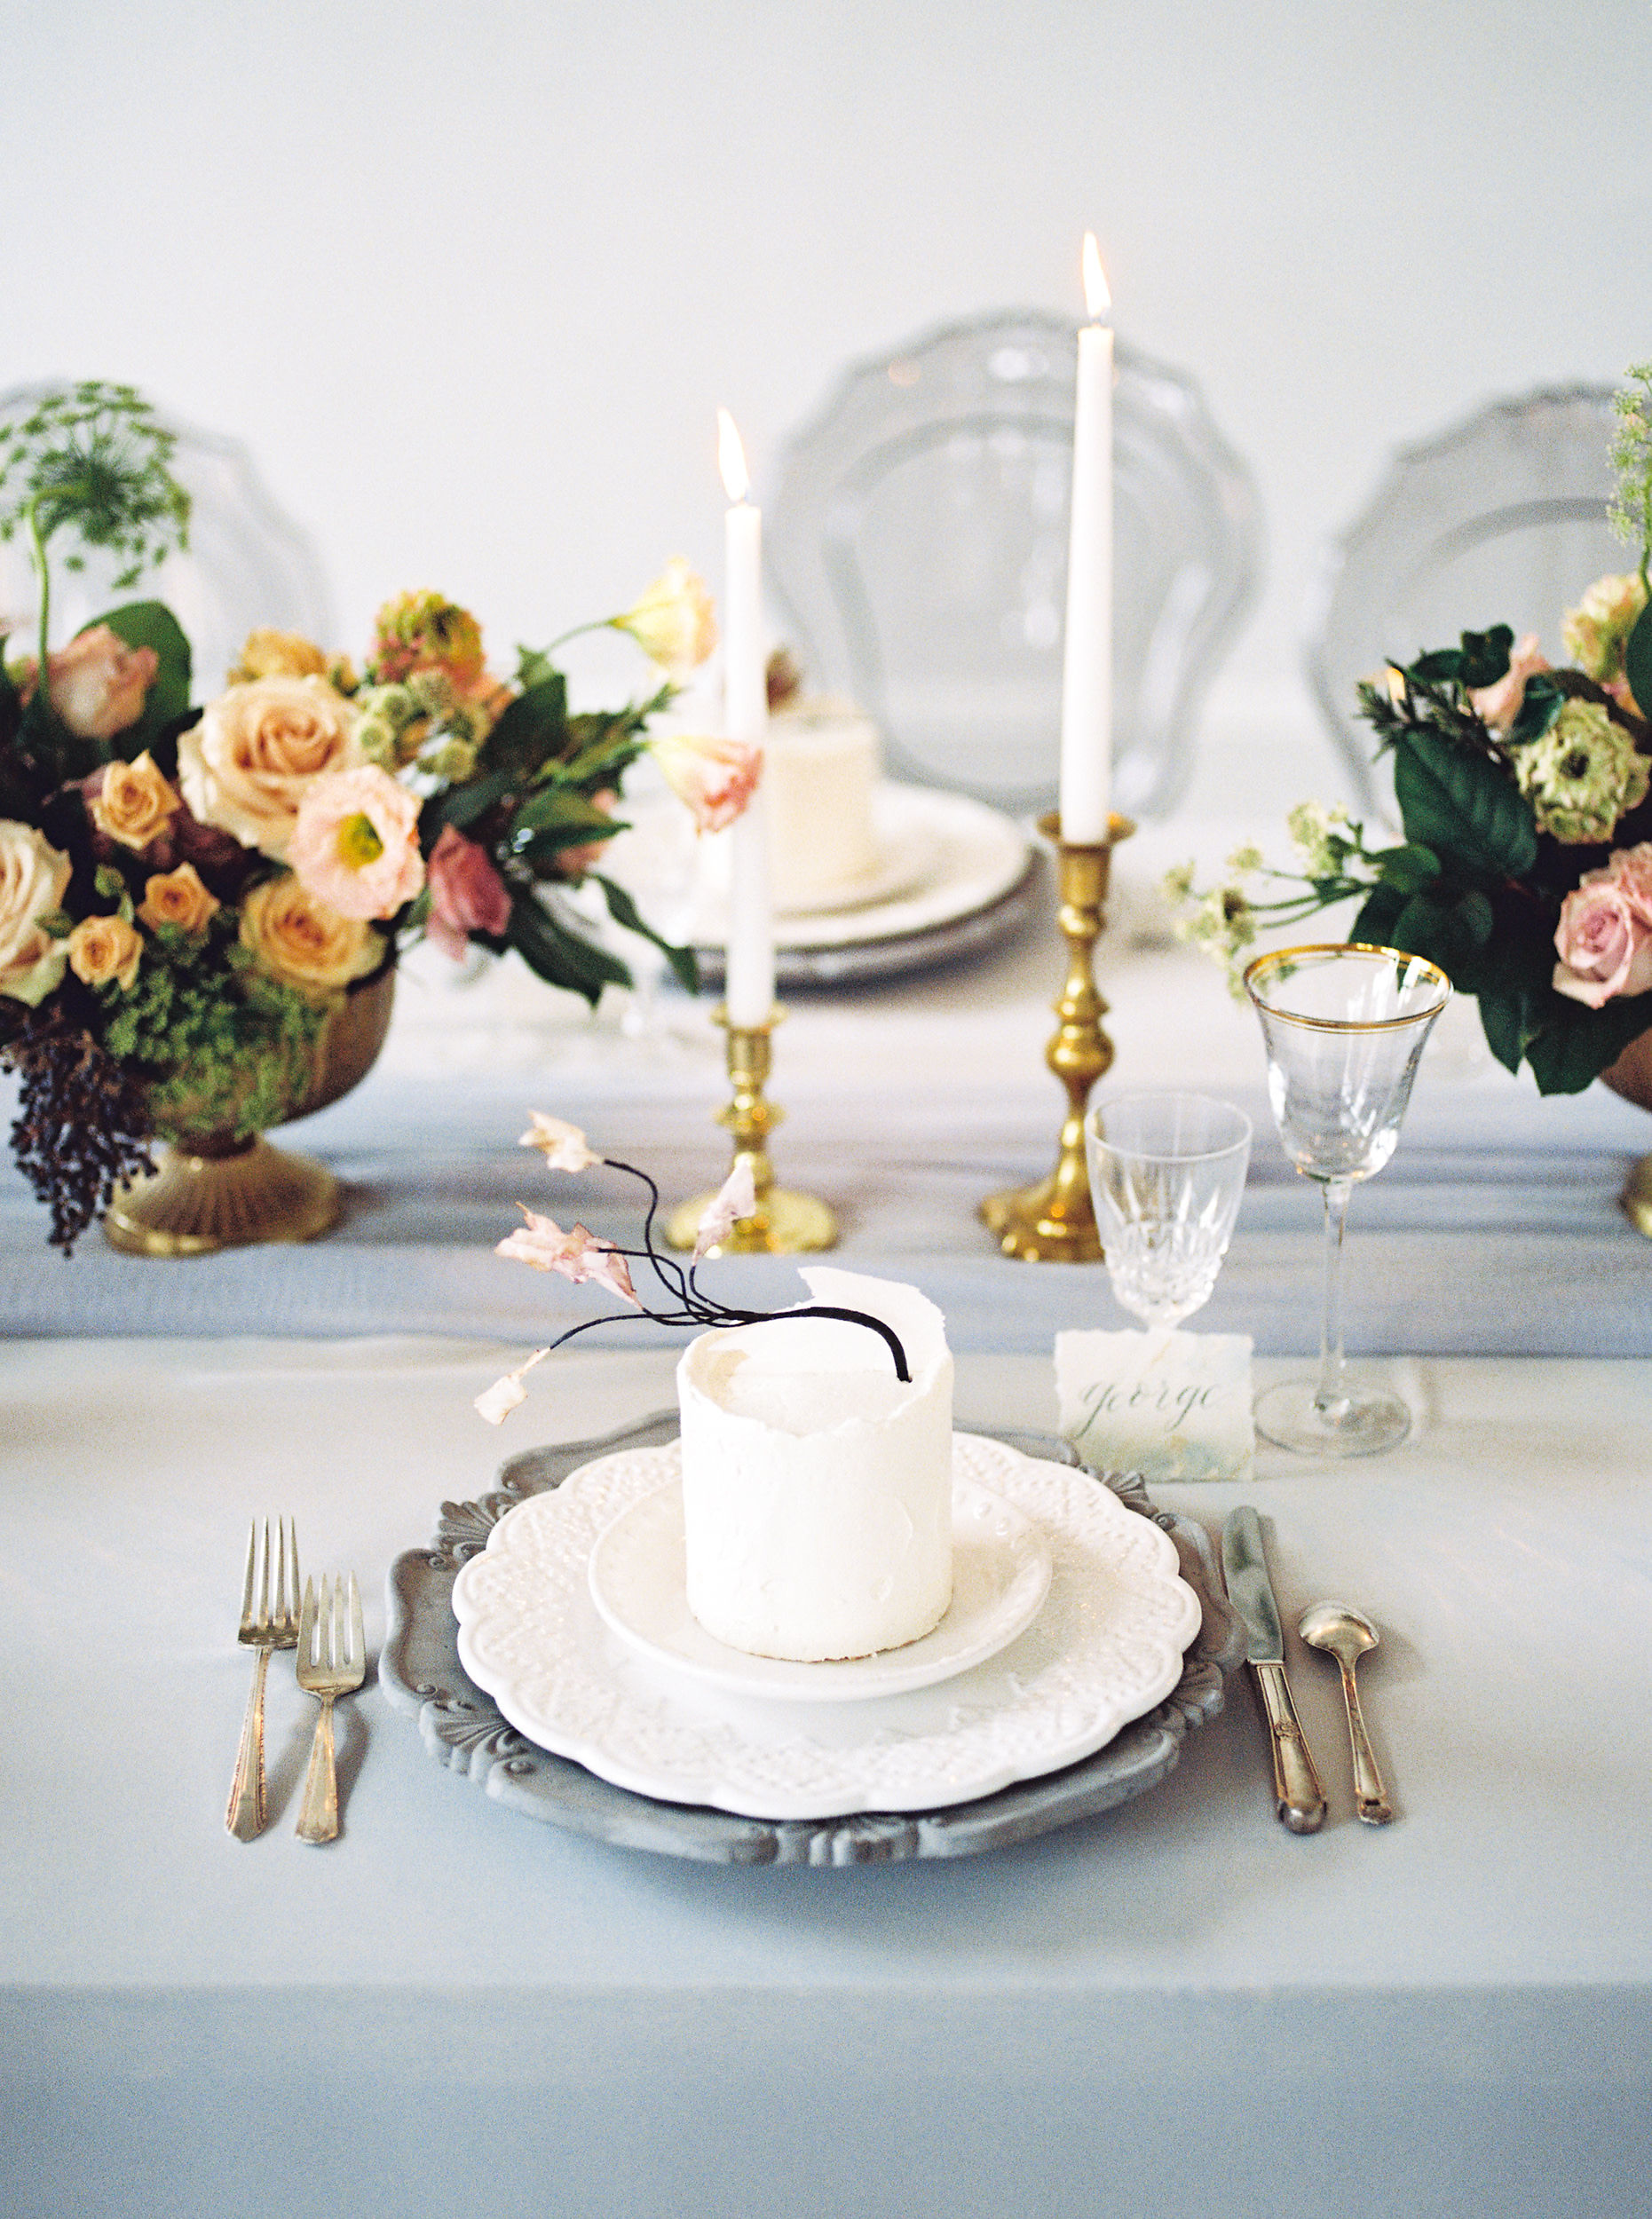 table setting with individual wedding cake